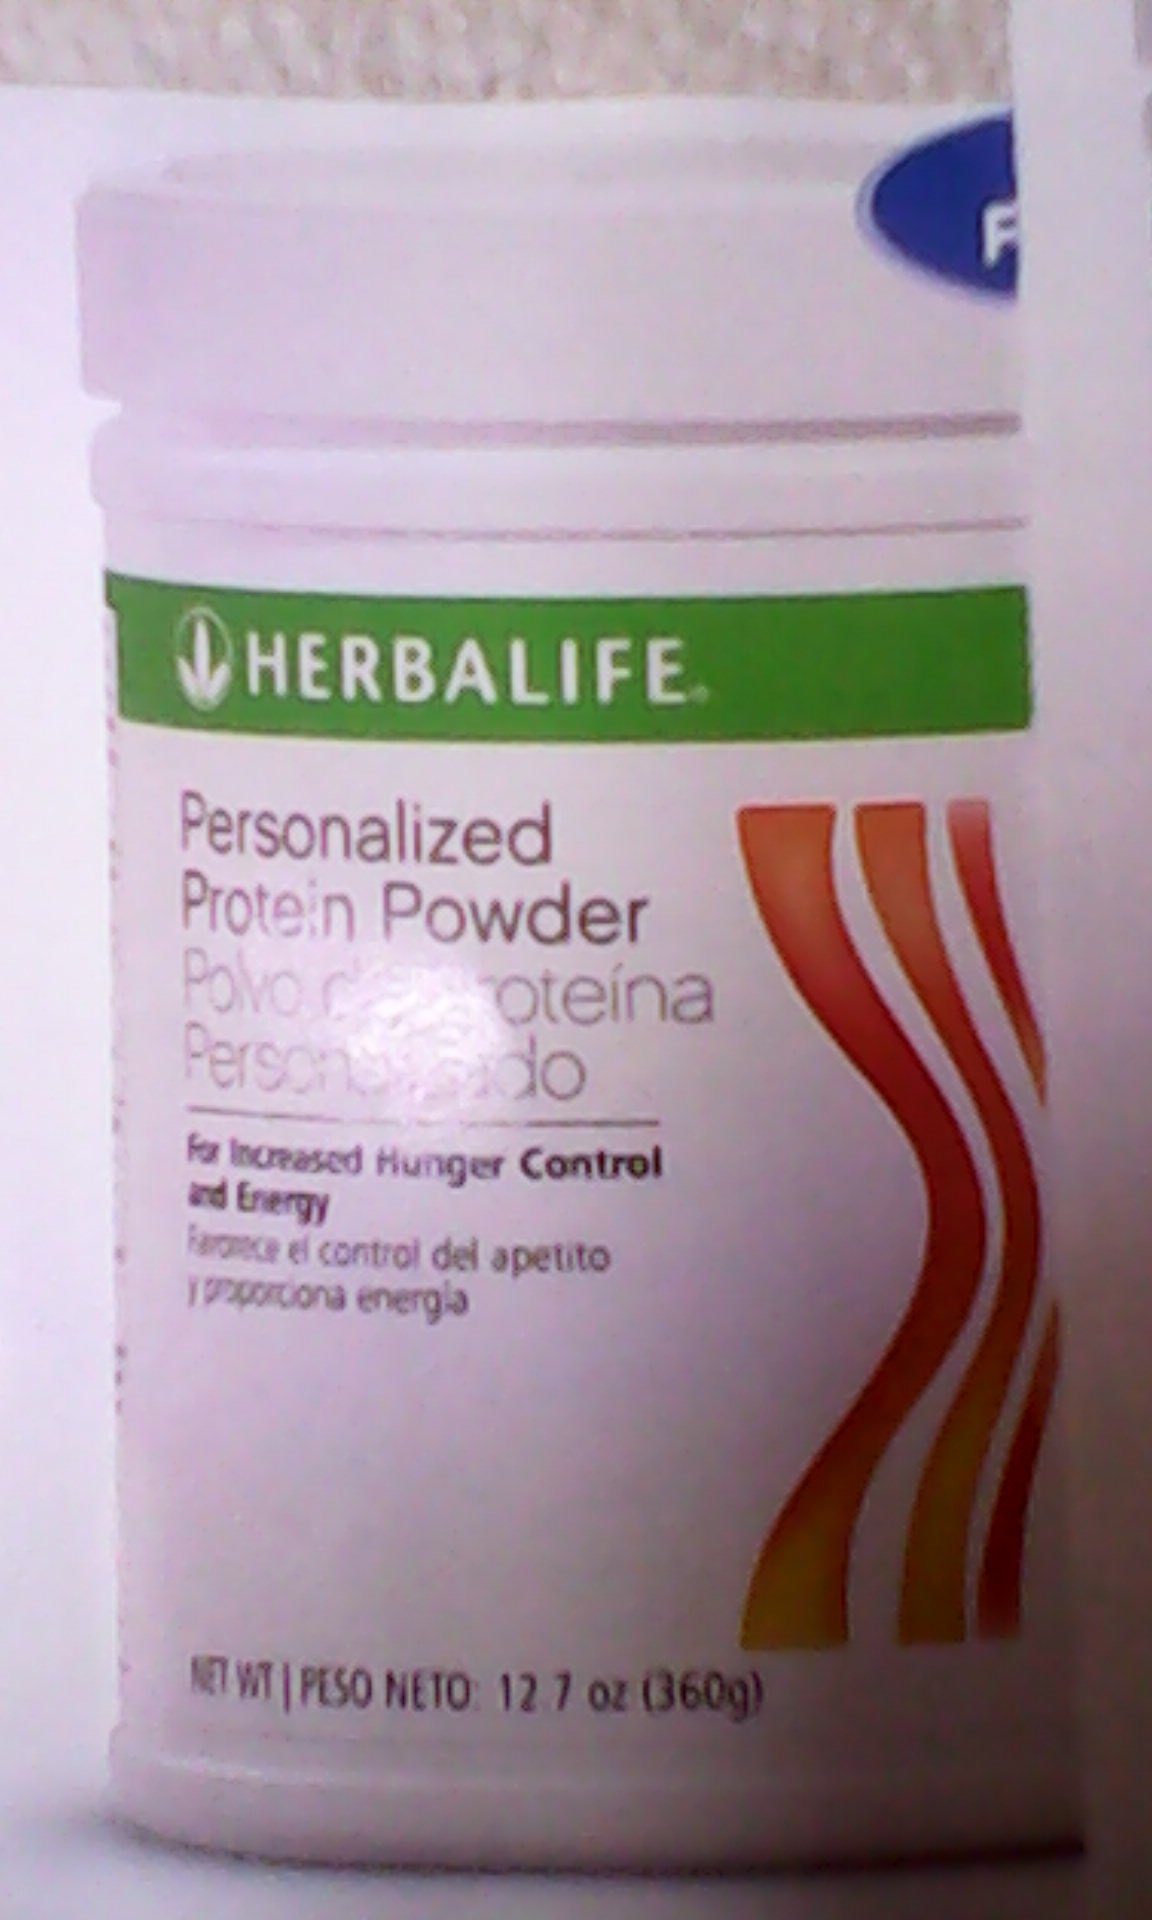 HERBALIFE QUICK COMBO - FORMULA 1 SHAKE MIX (Vanilla), PERSONALIZED PROTEIN, HERBAL ALOE (Mango), HERBAL TEA CONCENTRATE (Raspberry) by Herbalife (Image #3)